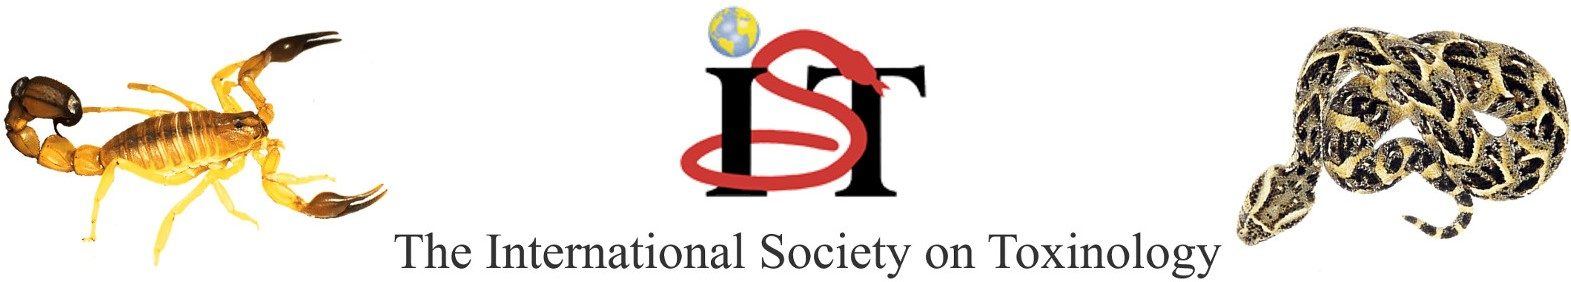 The International Society on Toxinology